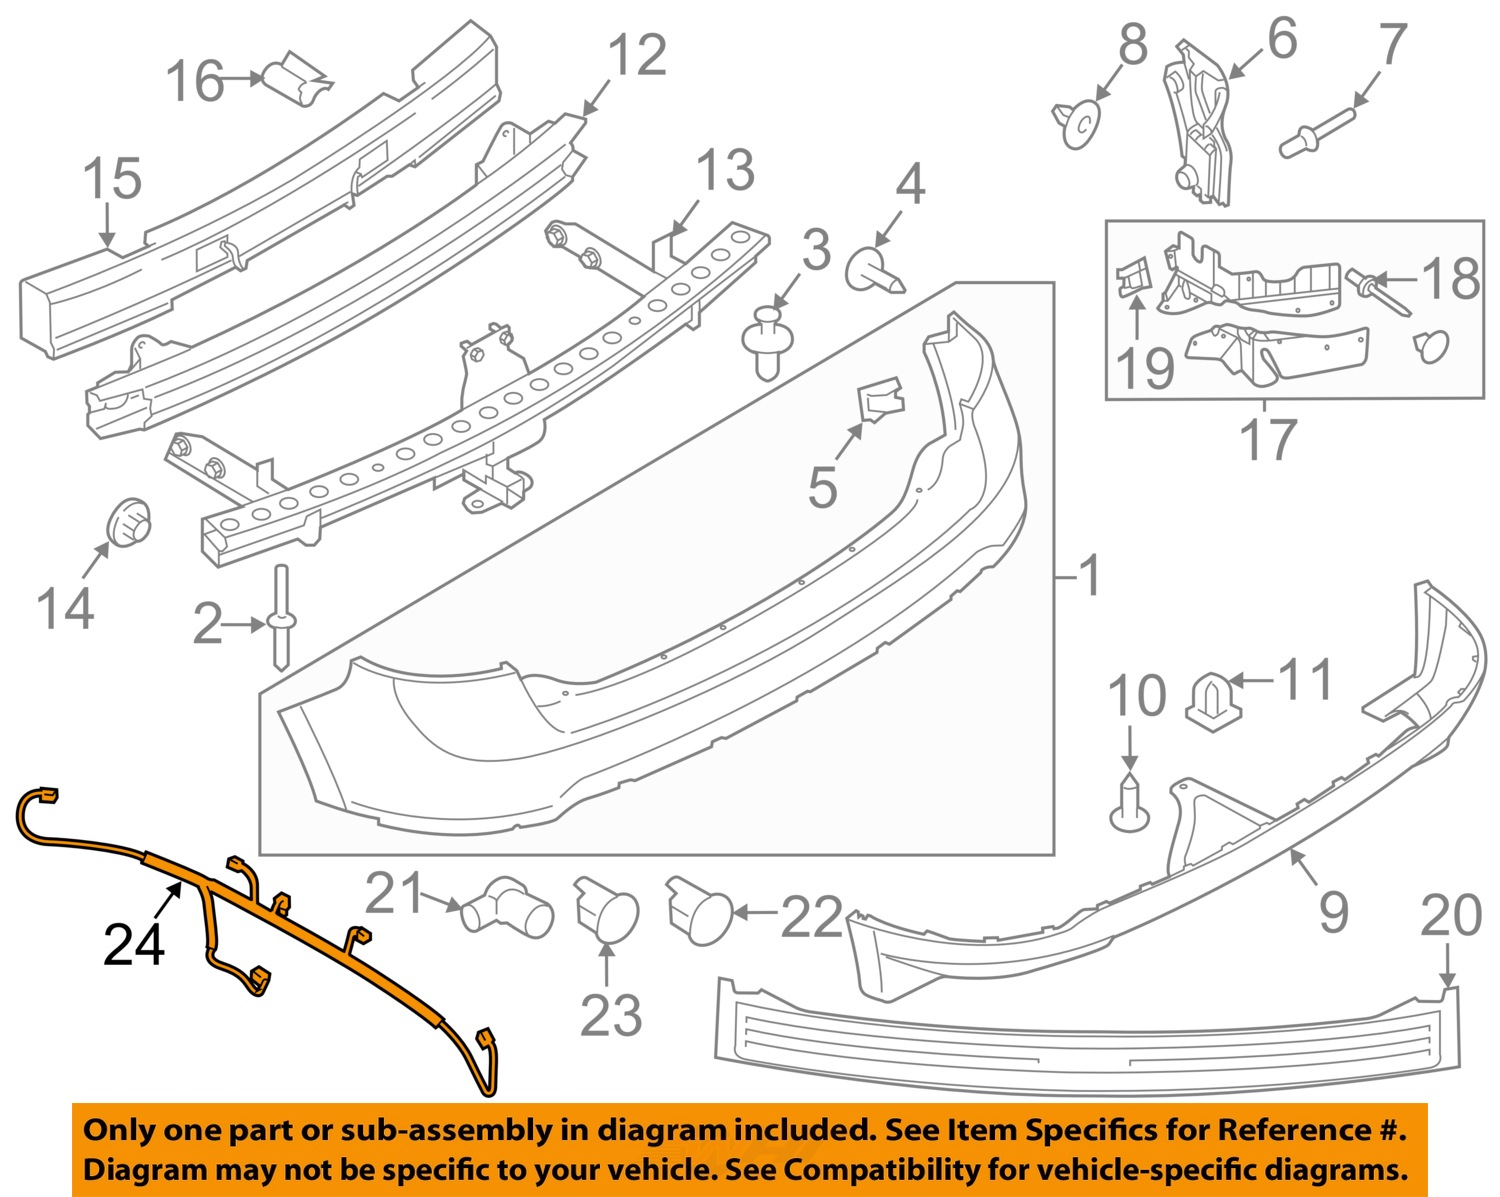 2013 ford edge wiring schematic 2013 ford edge radio wiring diagram #8